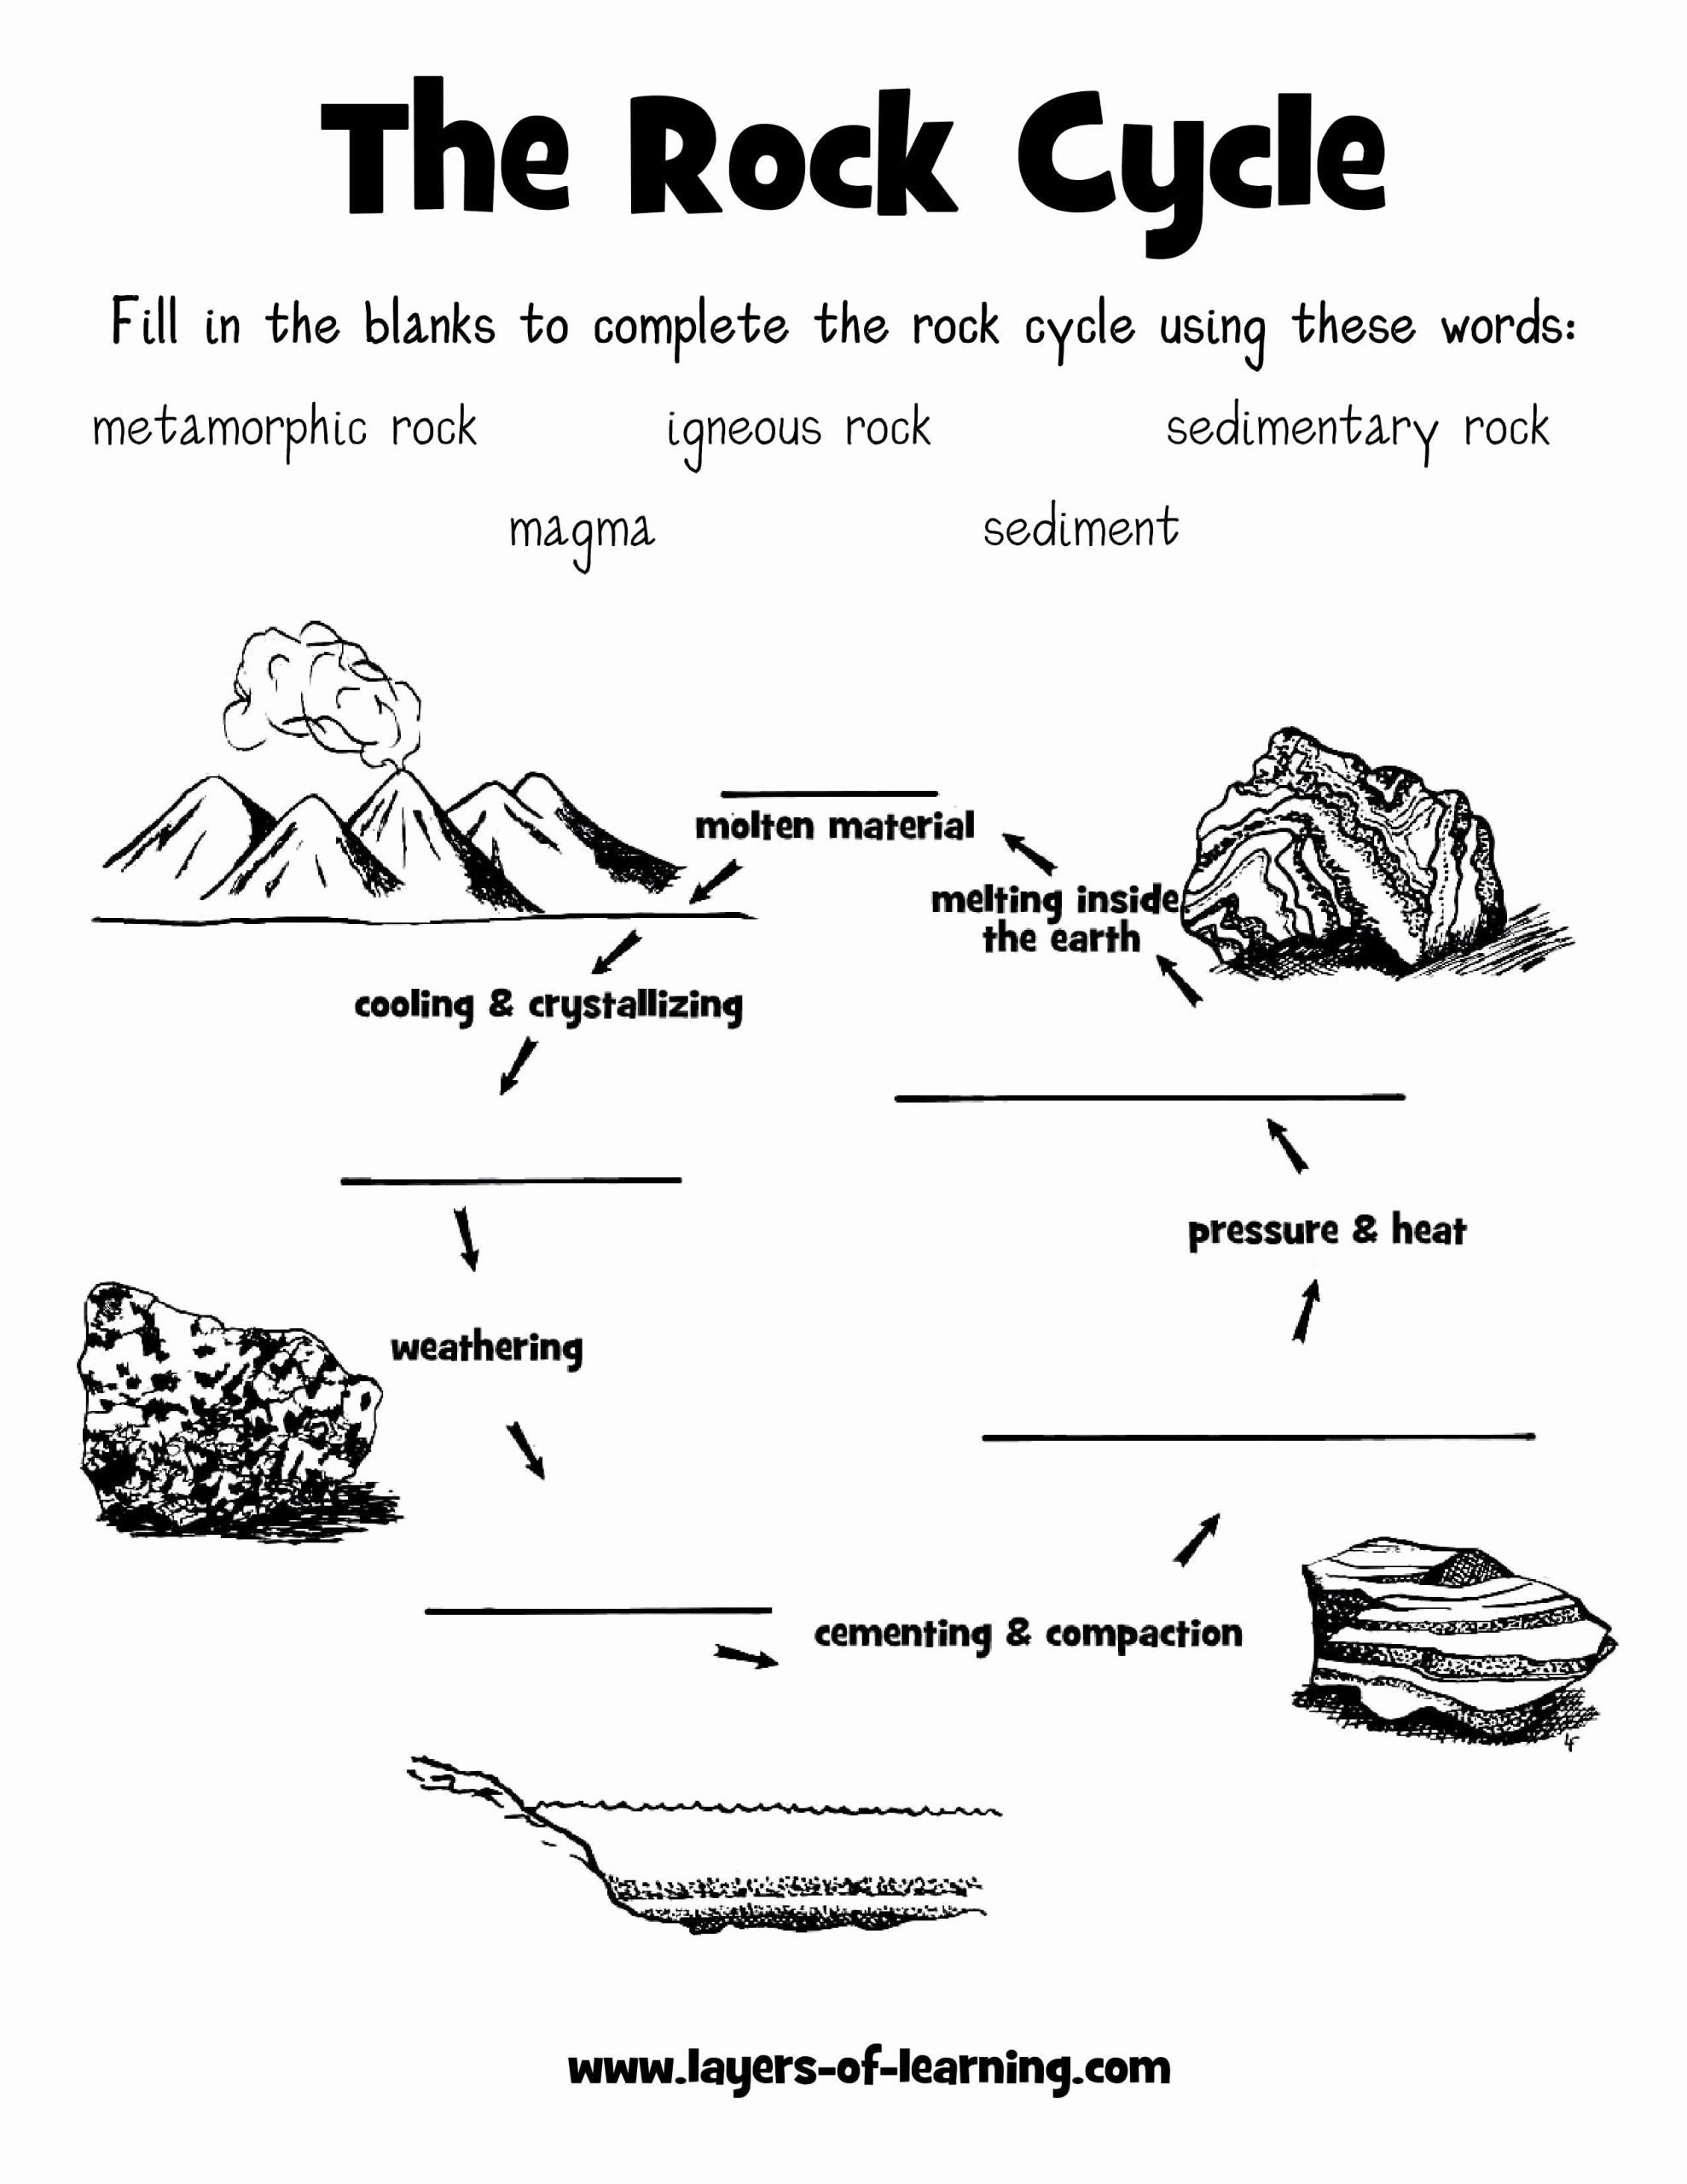 Rock Cycle Worksheet Middle School Ideas Rock Cycle Worksheet Layers Of Learning